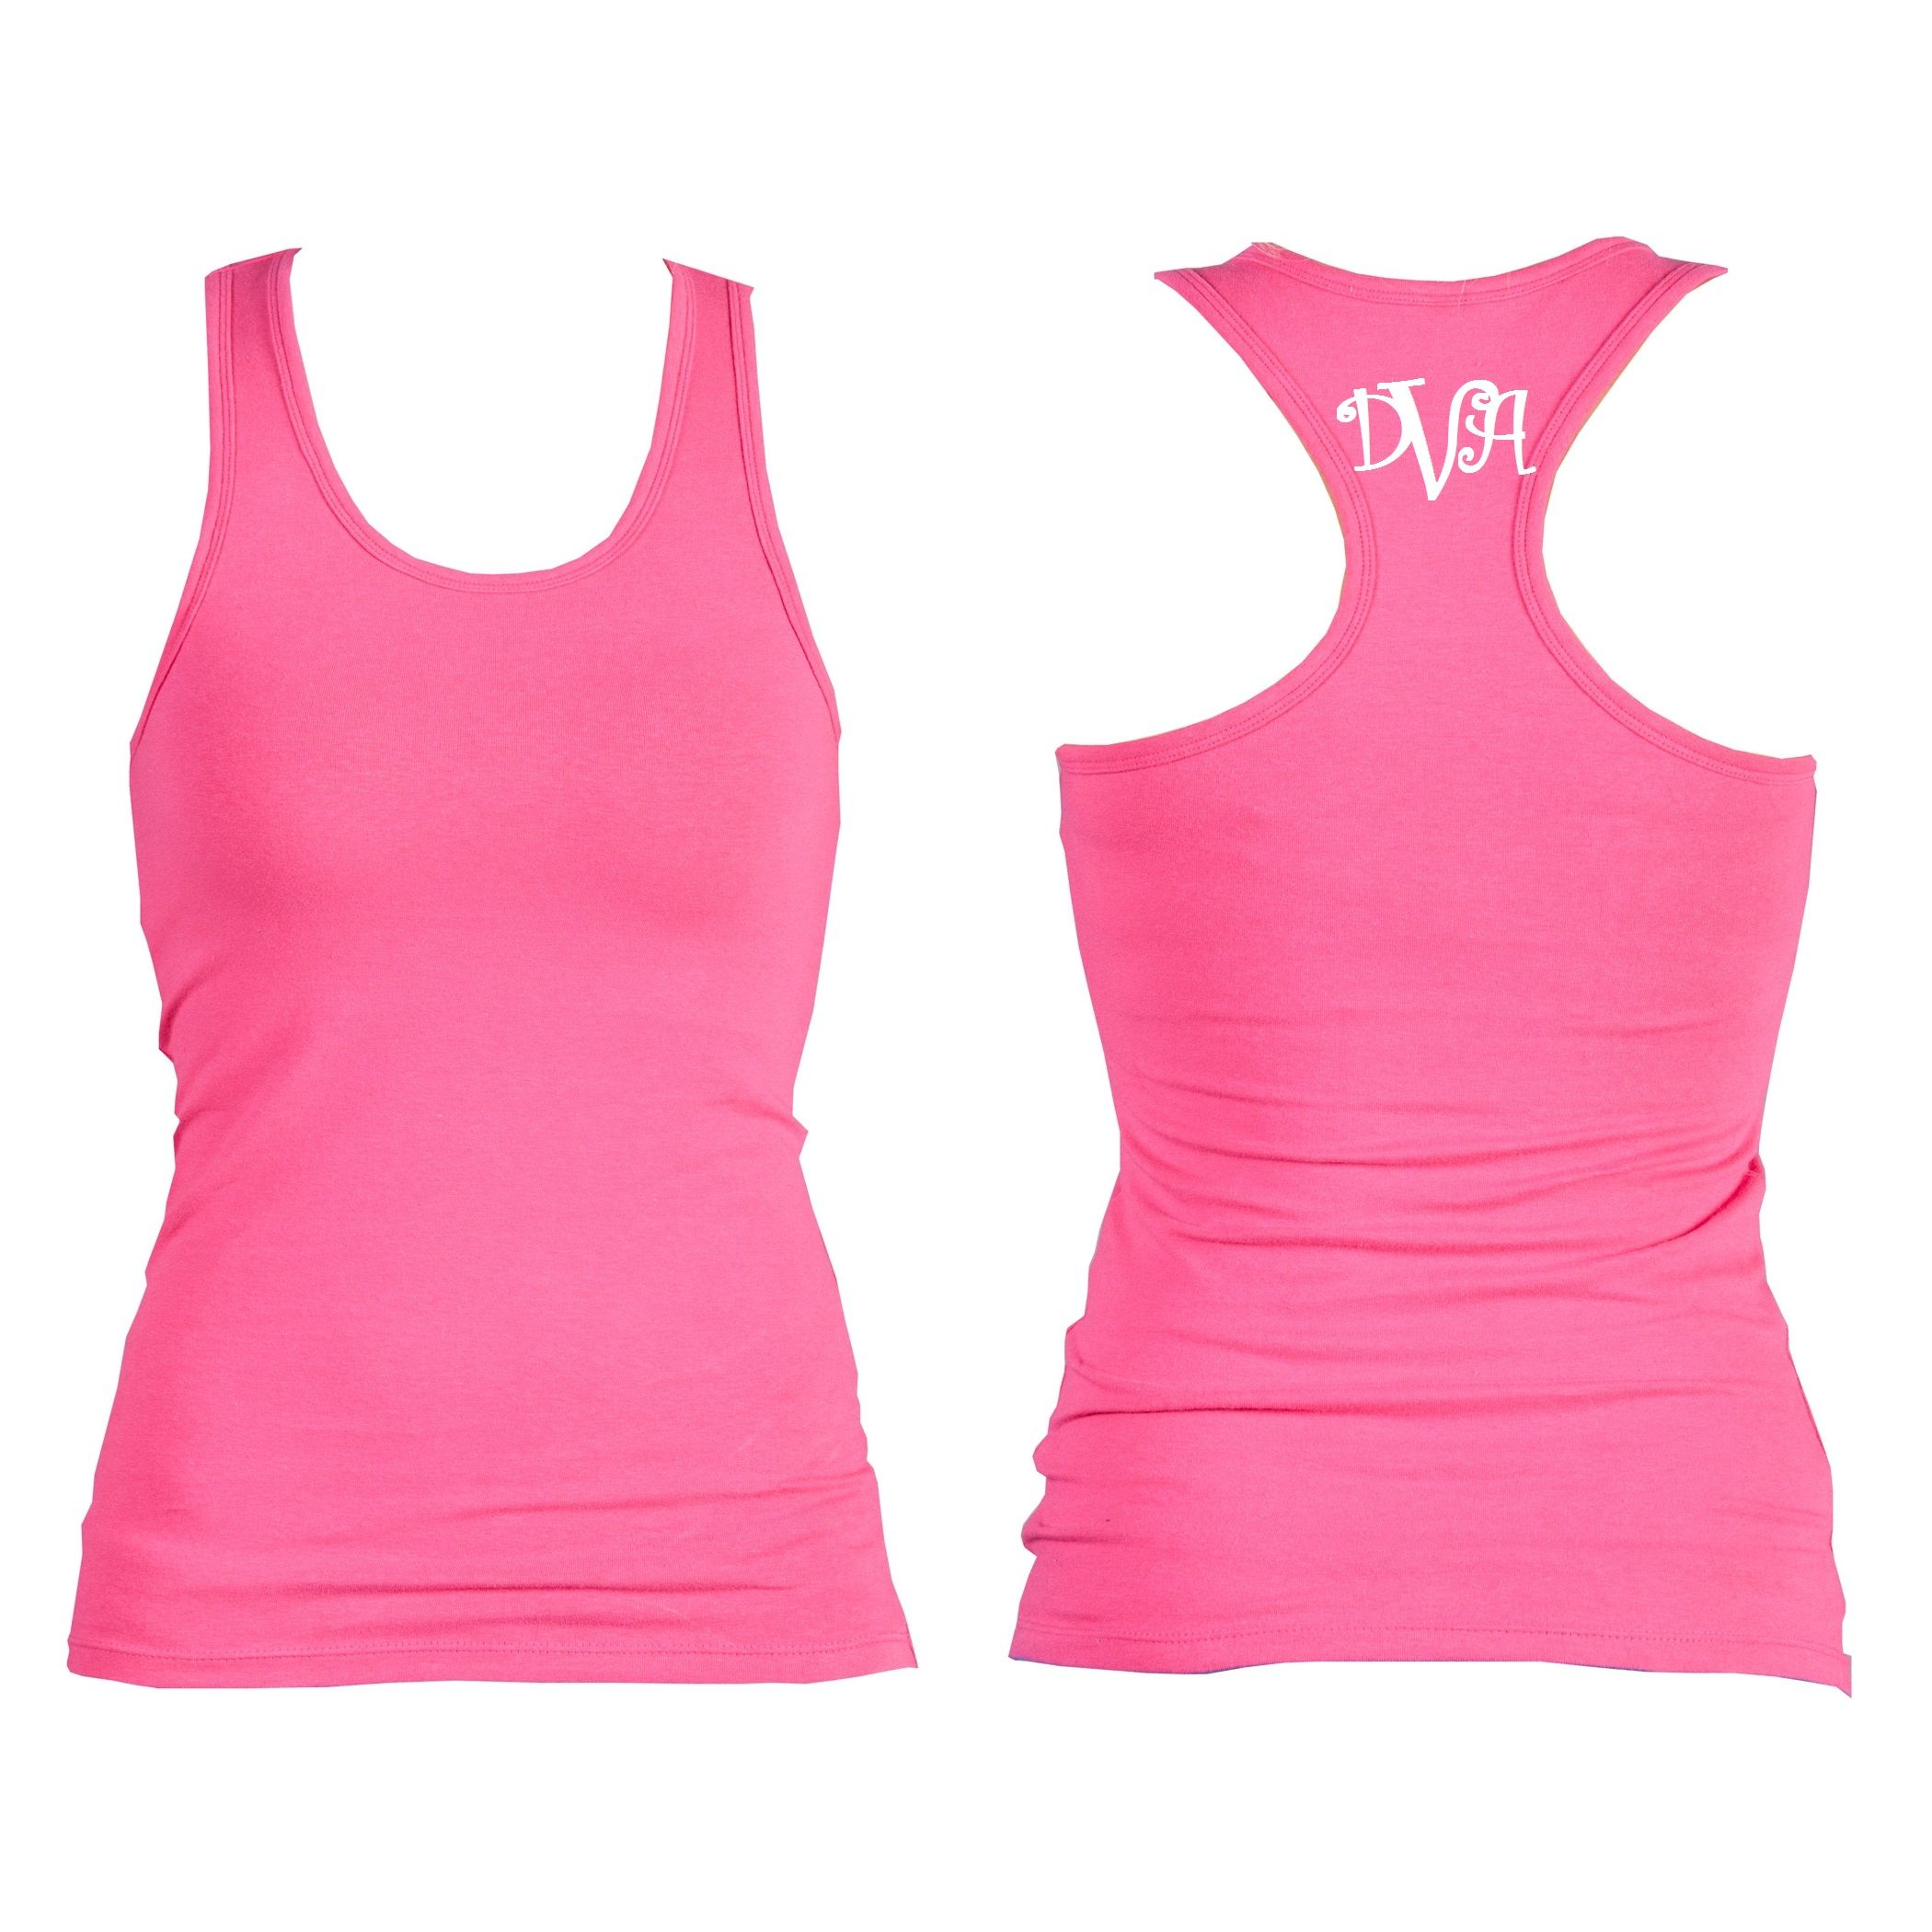 Monogrammed Racer Back workout tank...many colors available! www.kellykottage.com